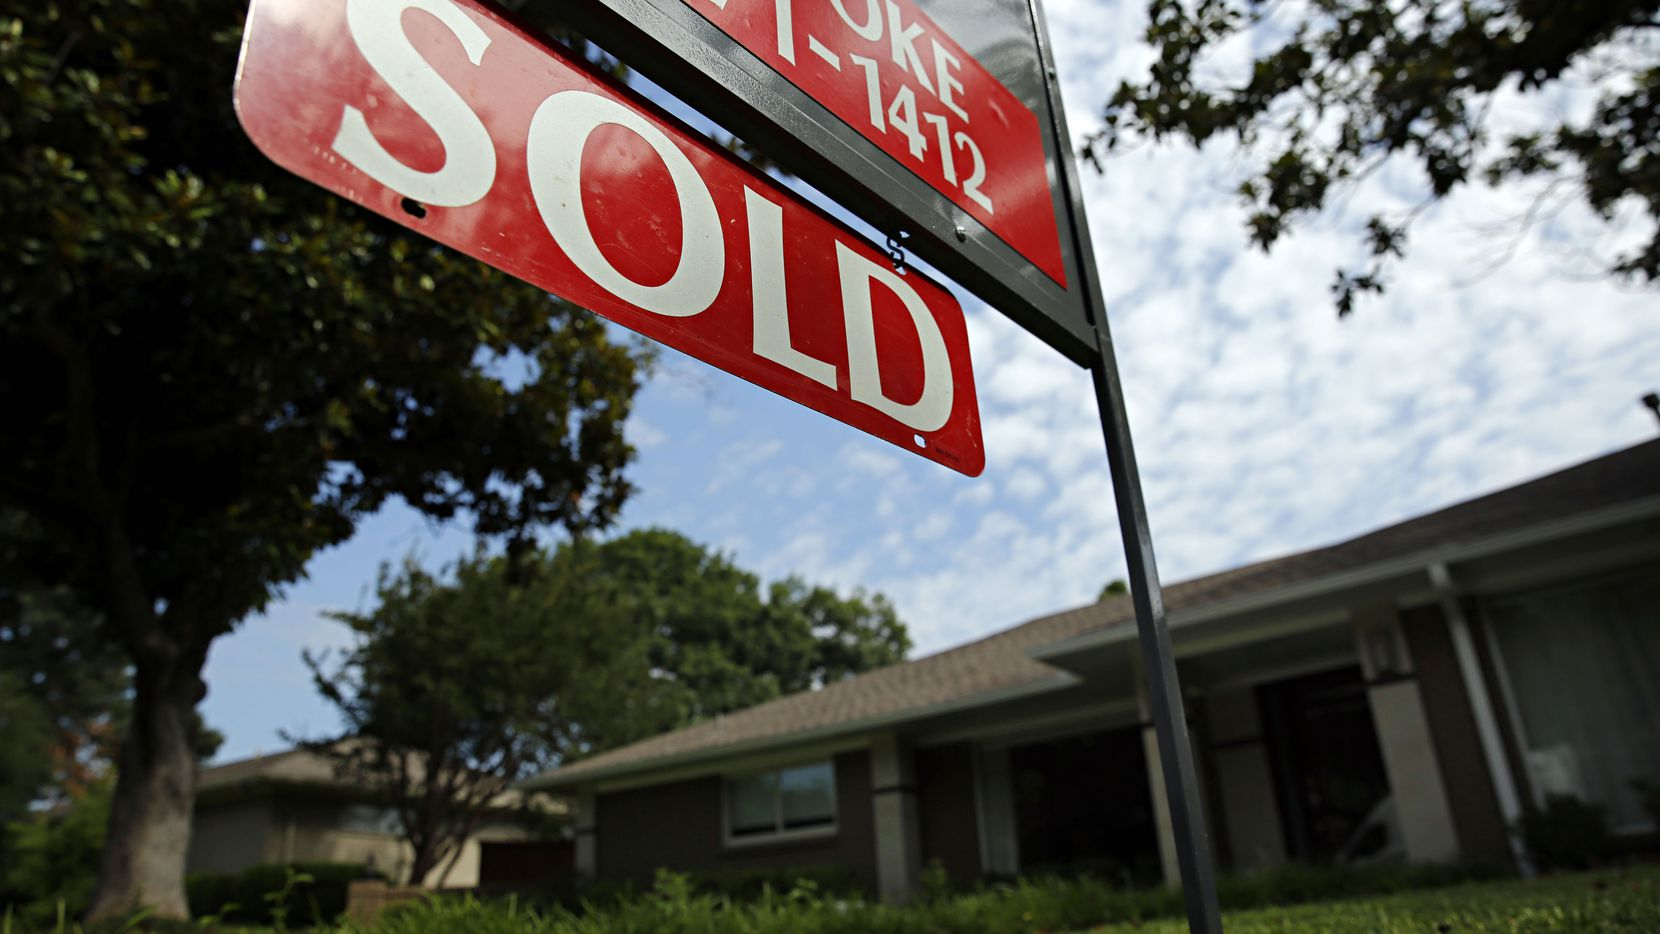 North Texas real estate agents in July sold 11,198 homes, a record number of sales in one month for the area.